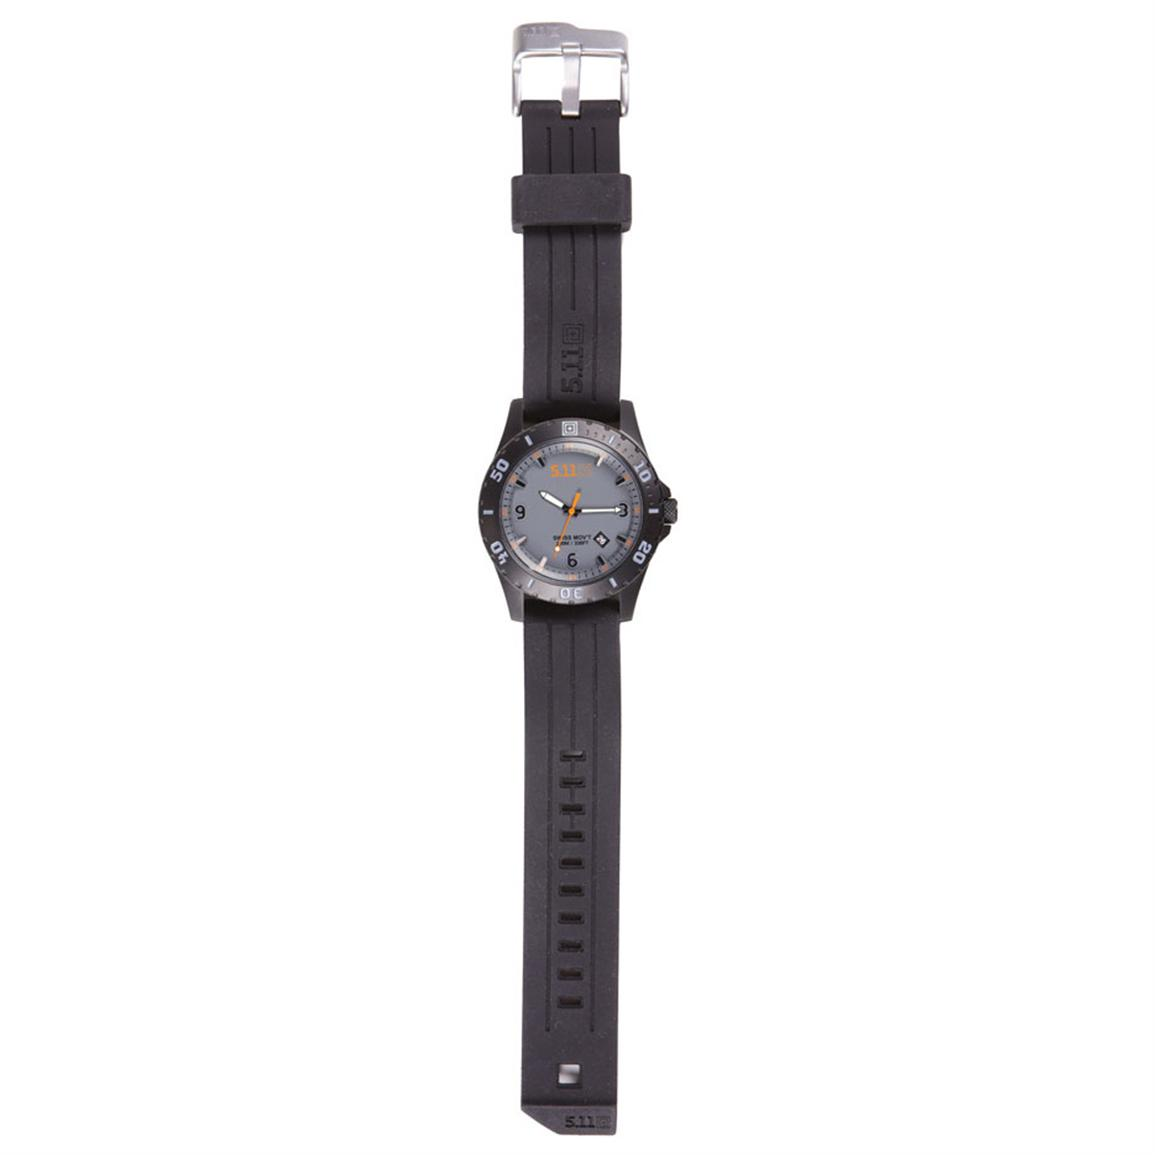 5.11 Tactical® Sentinel Watch, Granite